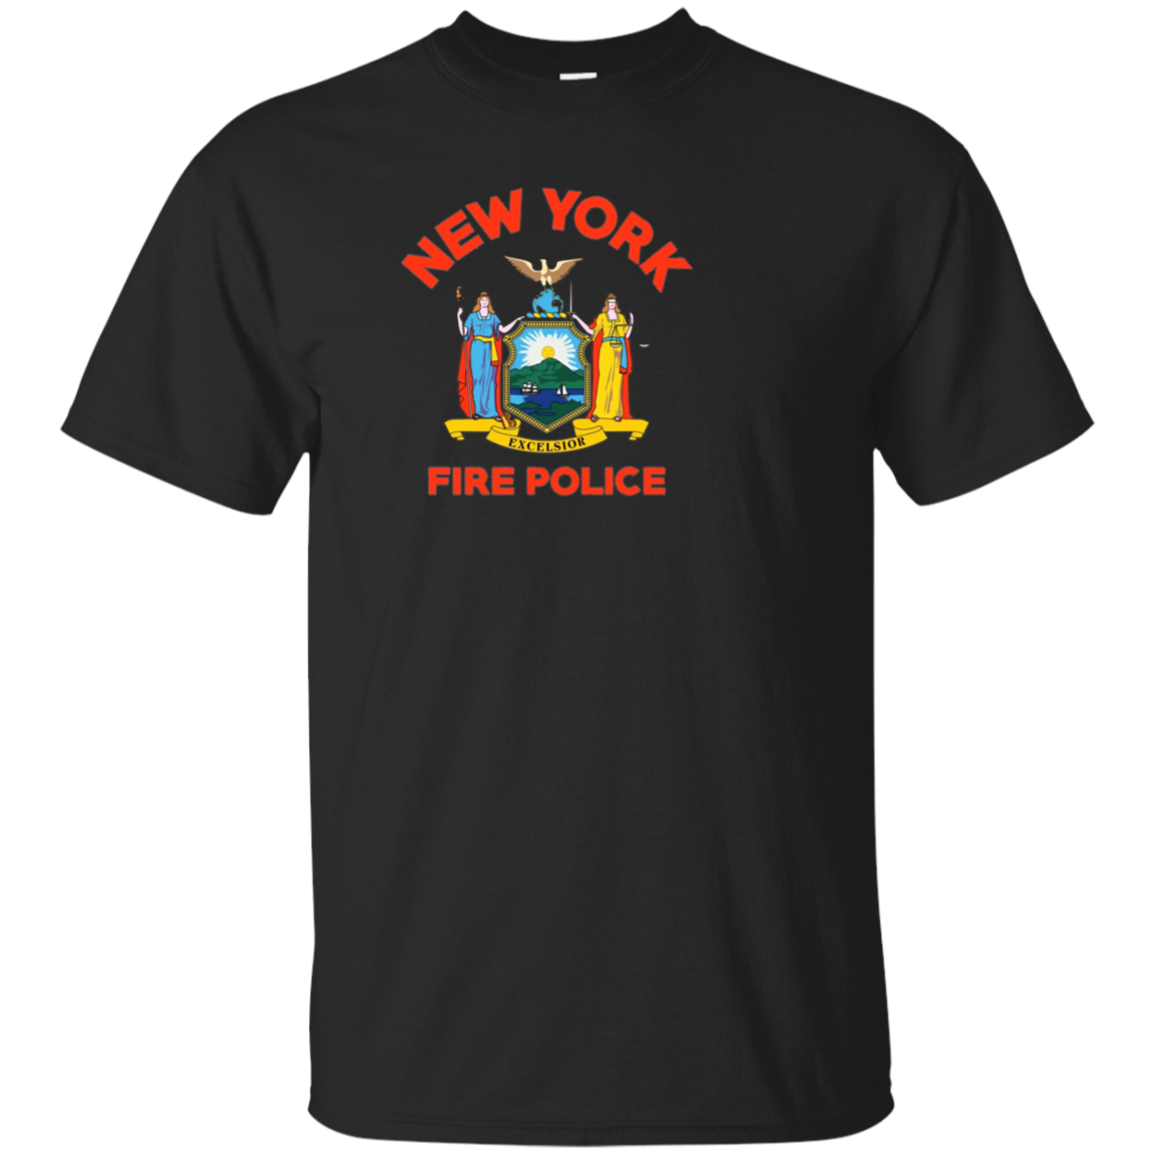 New York Fire Police Department Shirt Firefighters Firemen